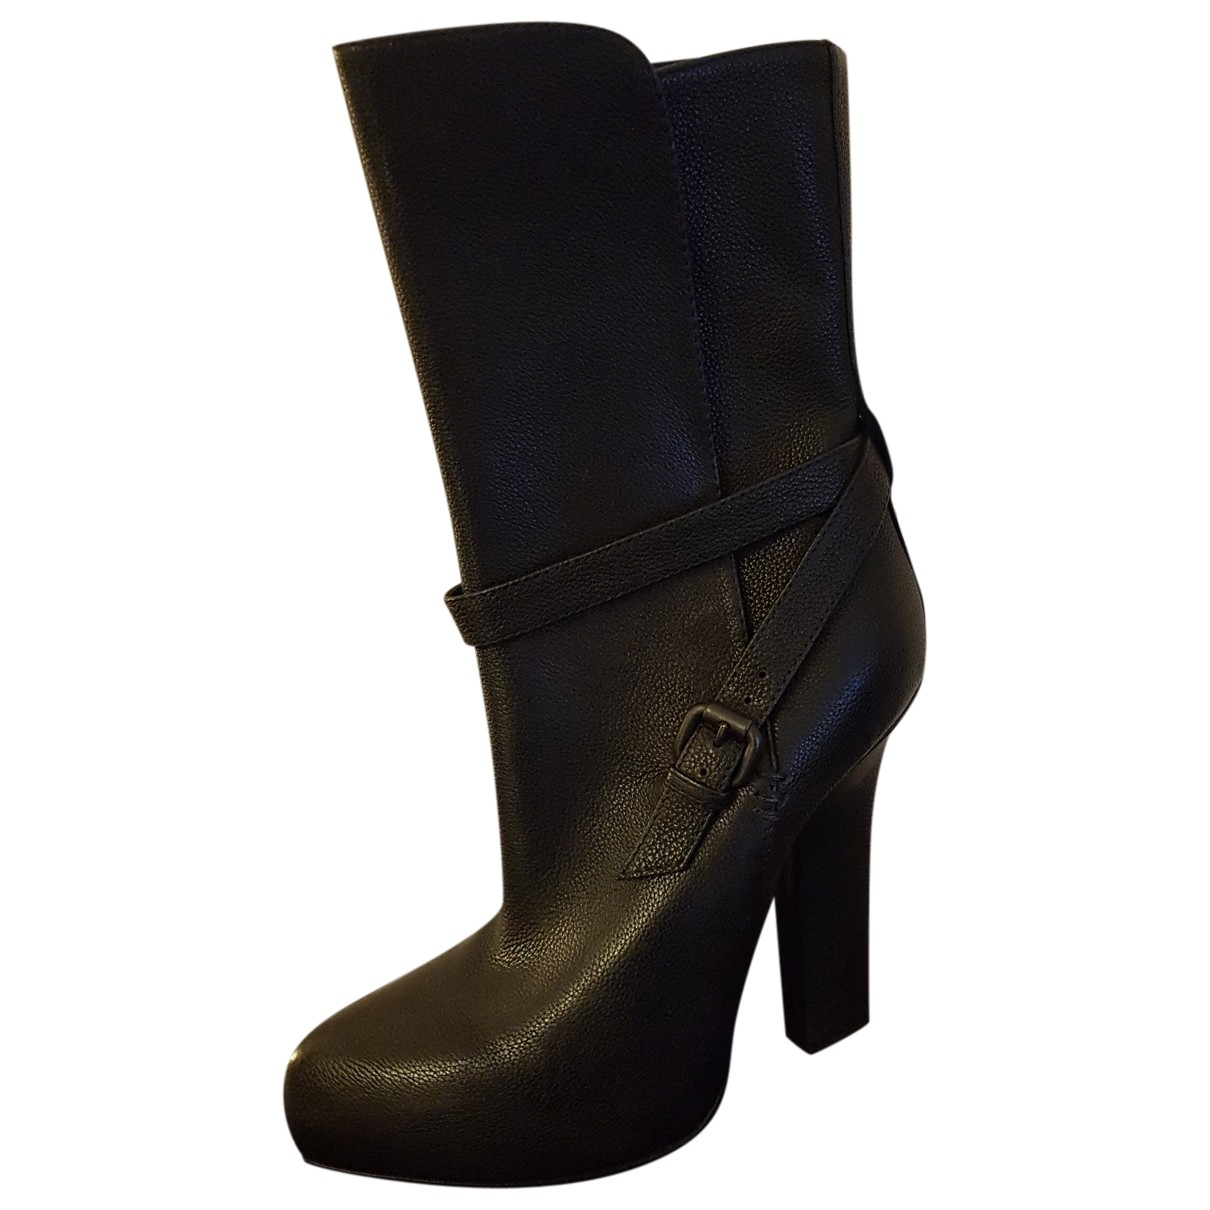 Bottega Veneta \N Black Leather Boots for Women 38 EU